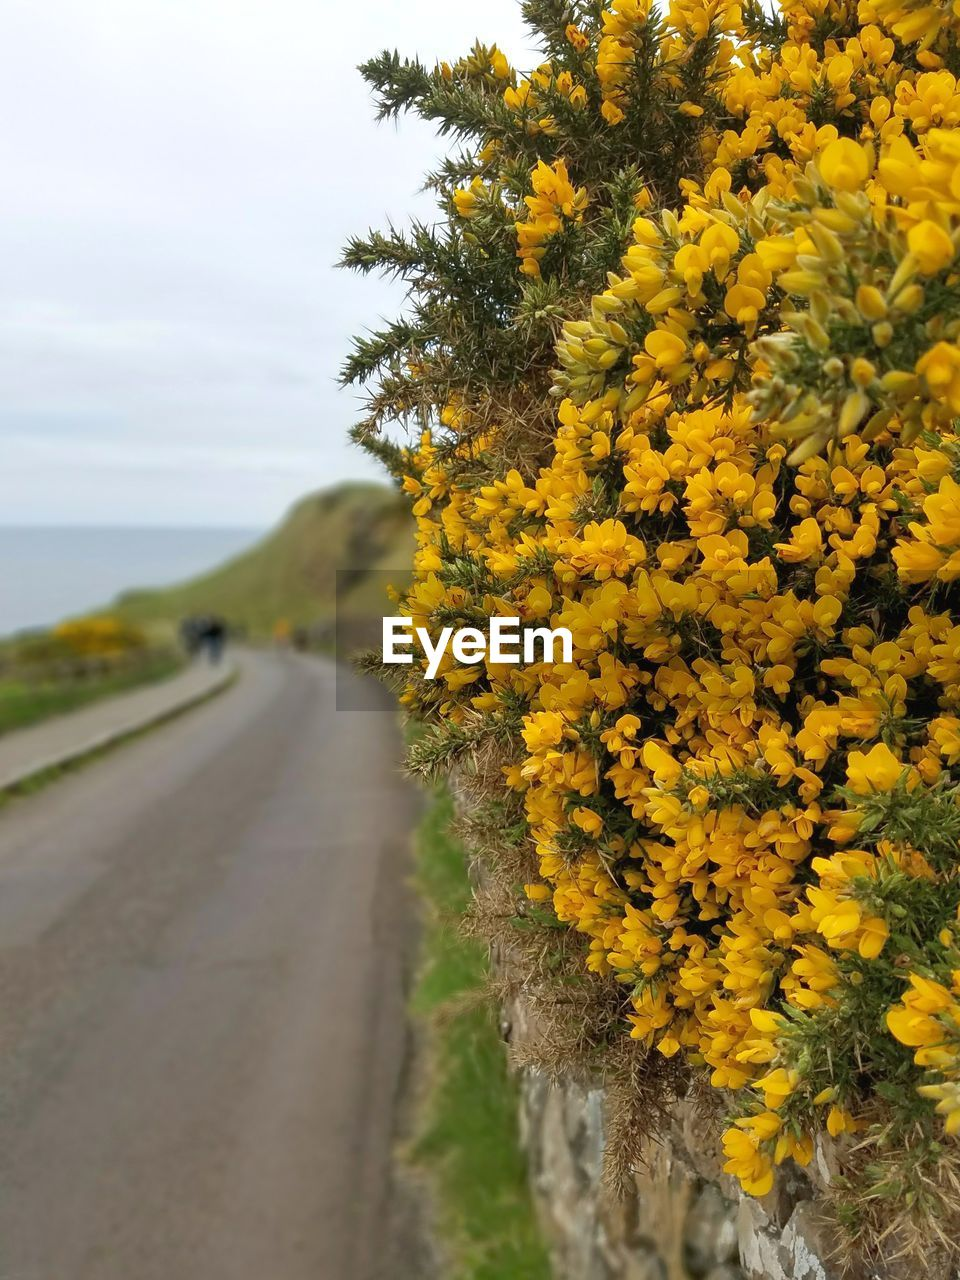 yellow, flower, nature, the way forward, growth, outdoors, day, tree, no people, road, beauty in nature, plant, freshness, rural scene, scenics, flower head, fragility, close-up, sky